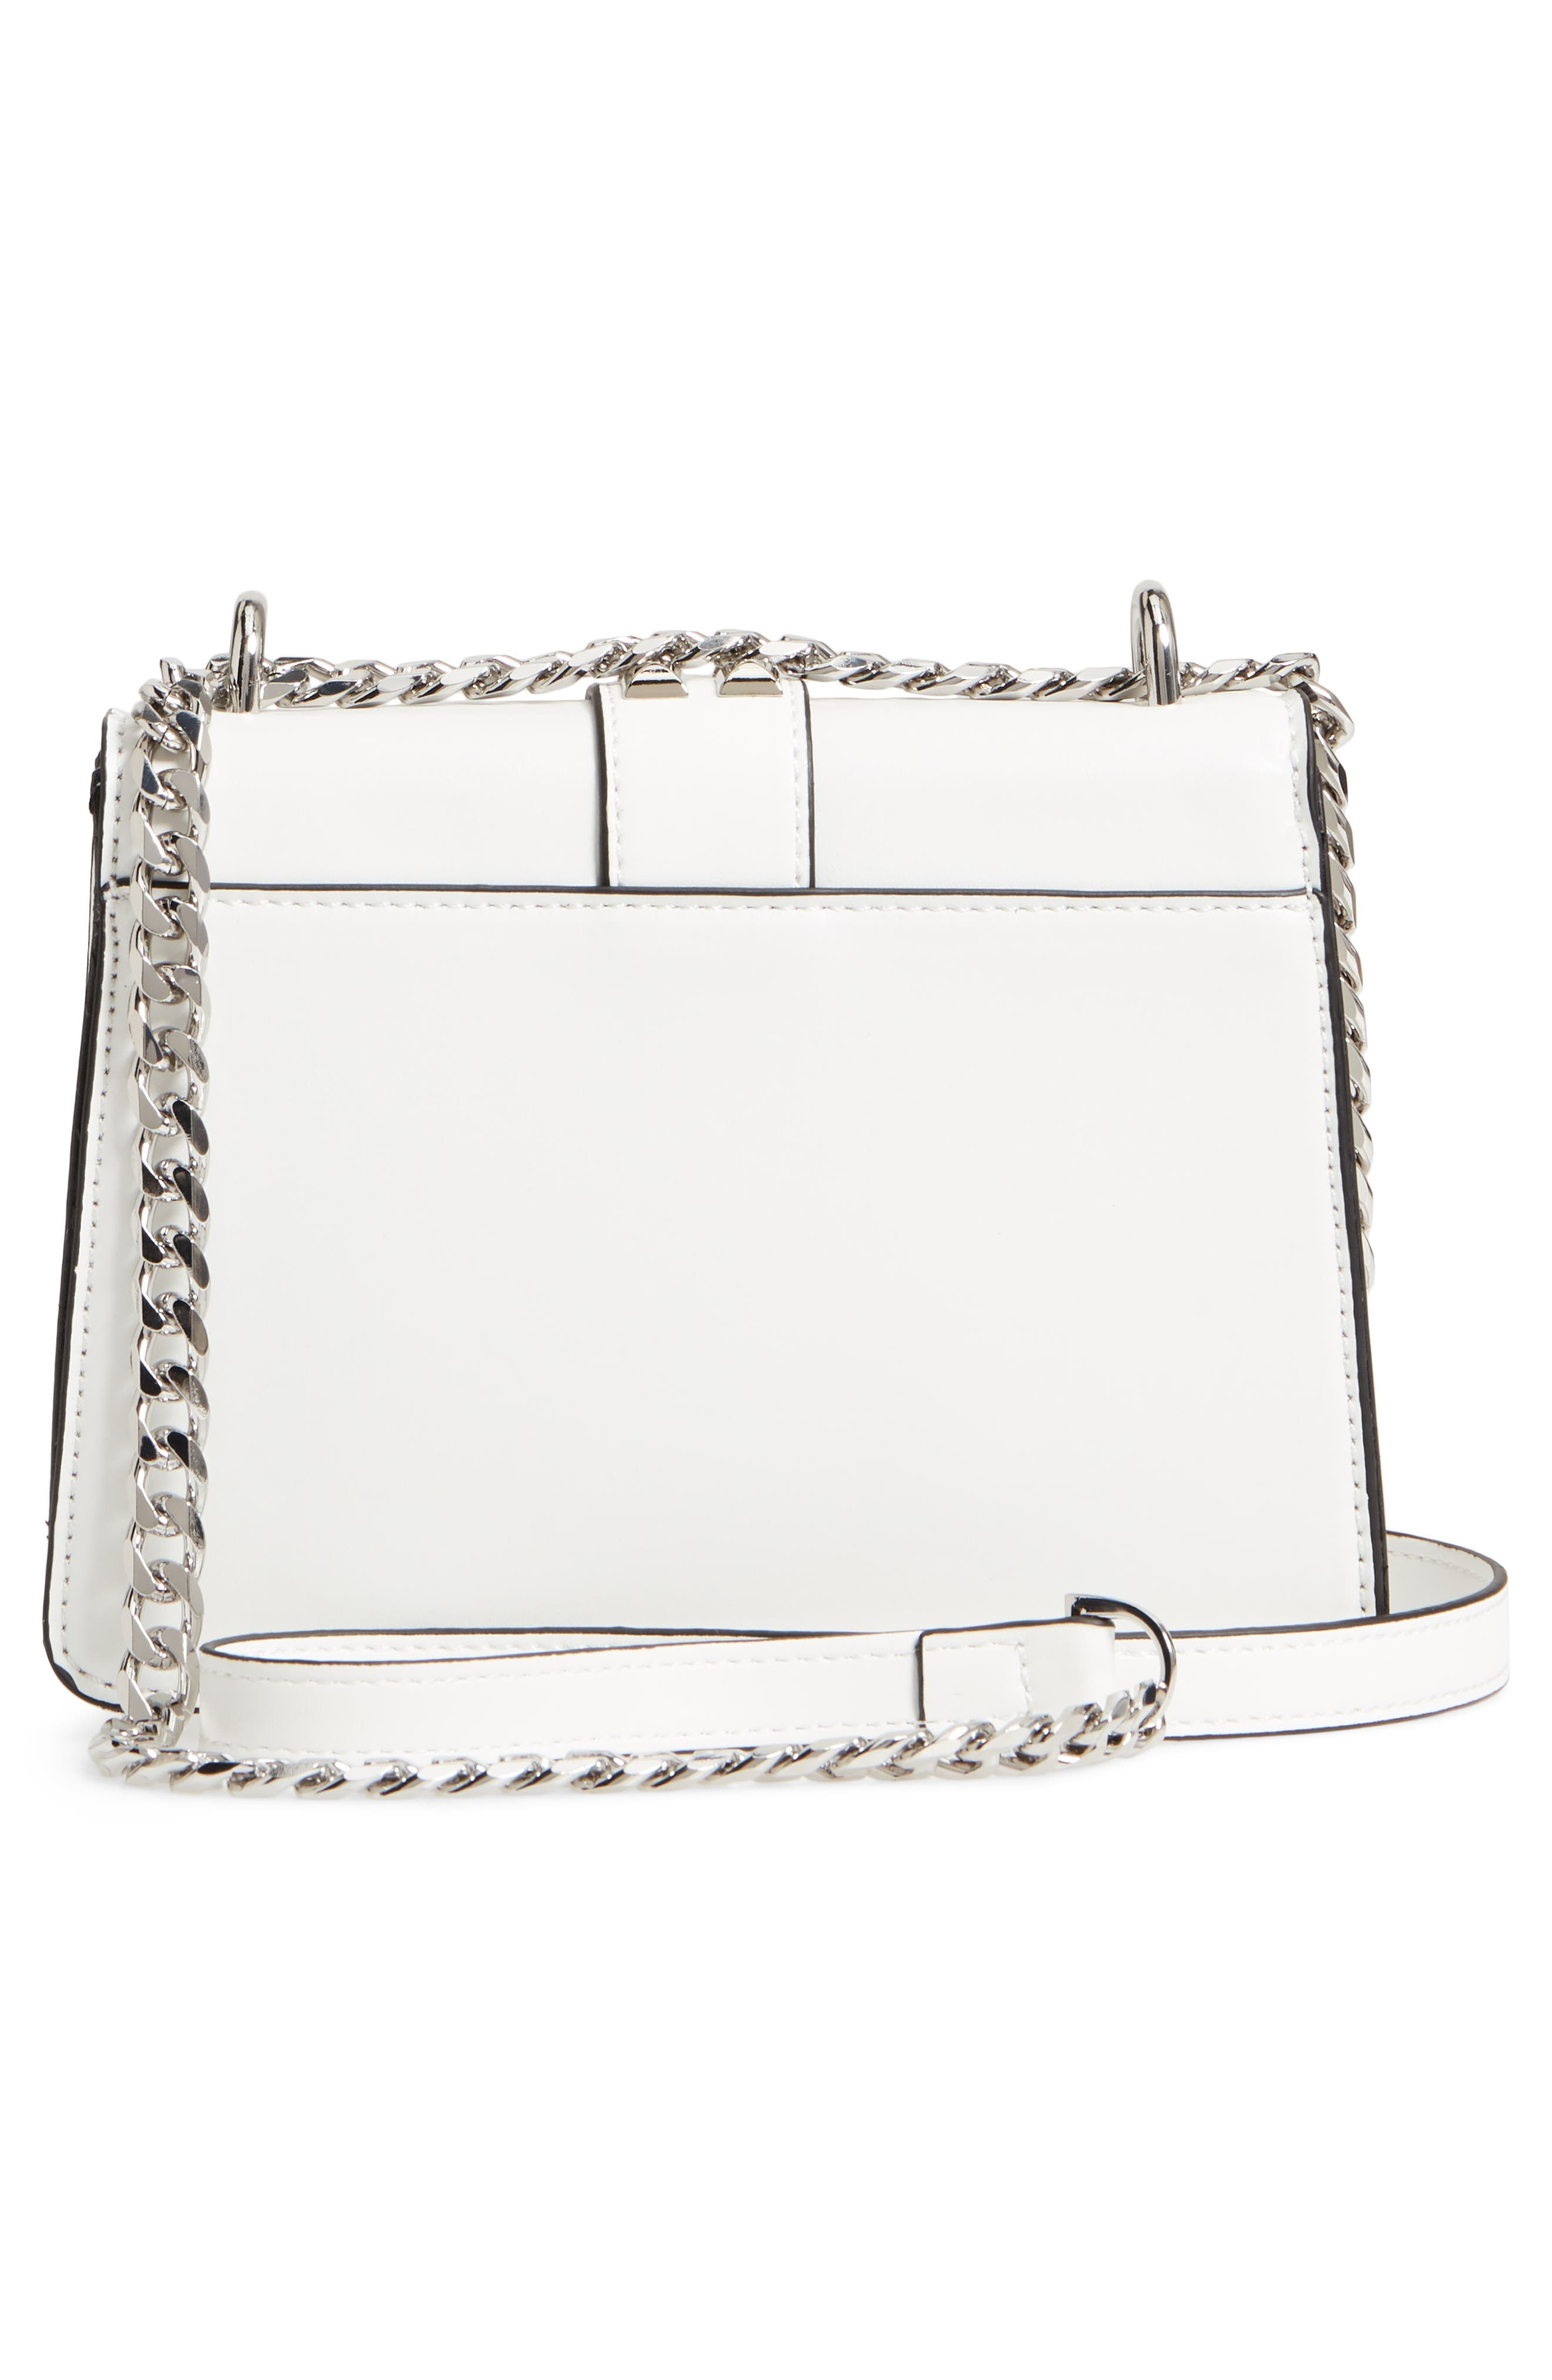 Shelby Studded Faux Leather Crossbody Bag,                             Alternate thumbnail 6, color,                             White